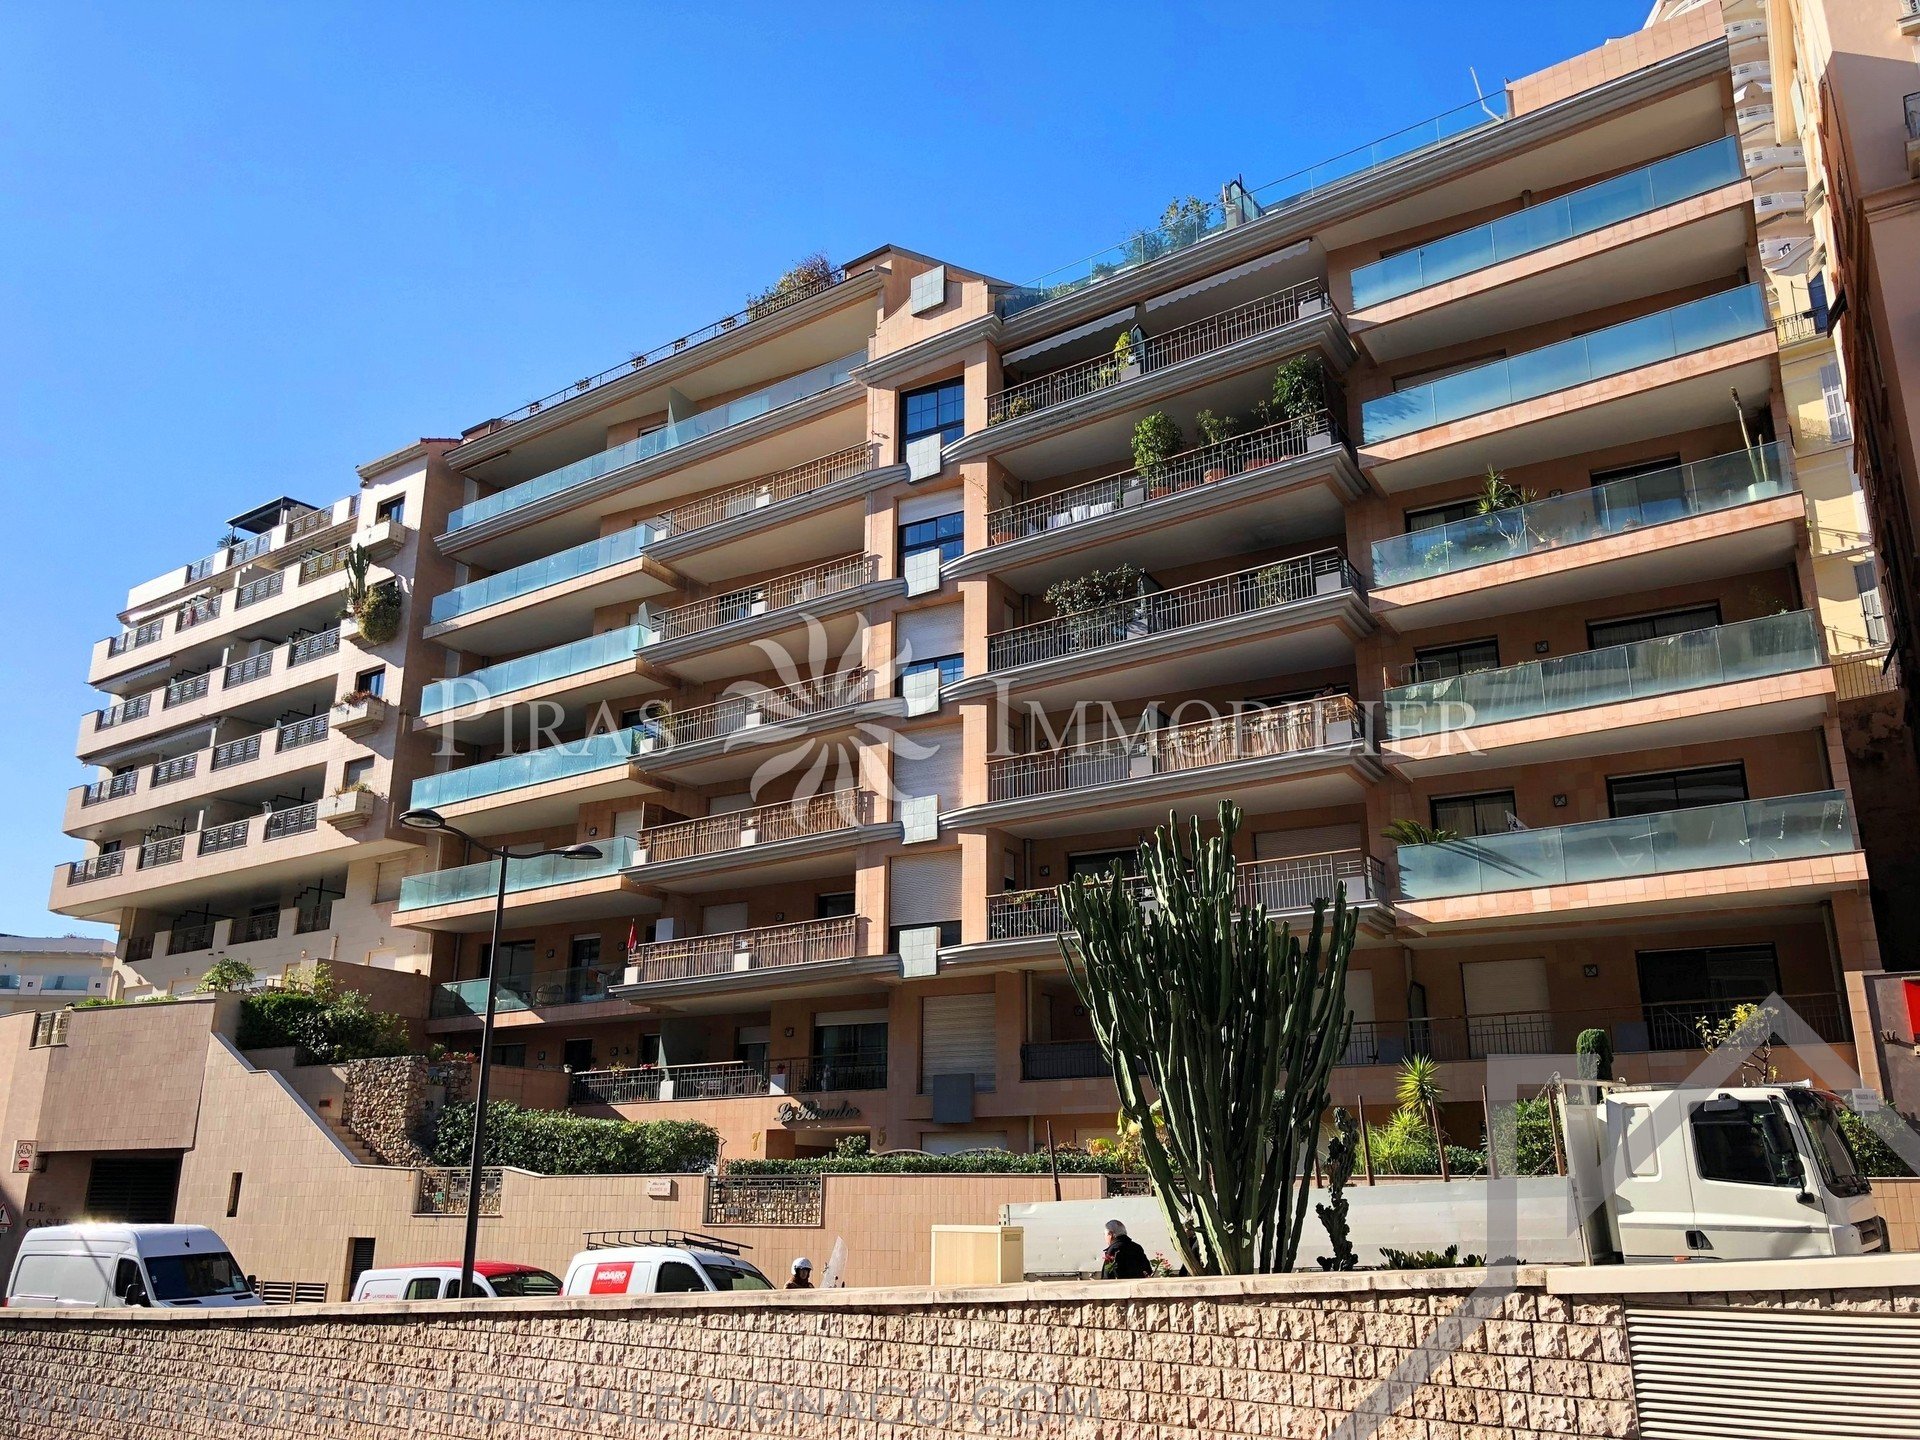 Parador Residence - Condamine Port - 3 Bed Flat - Properties for sale in Monaco